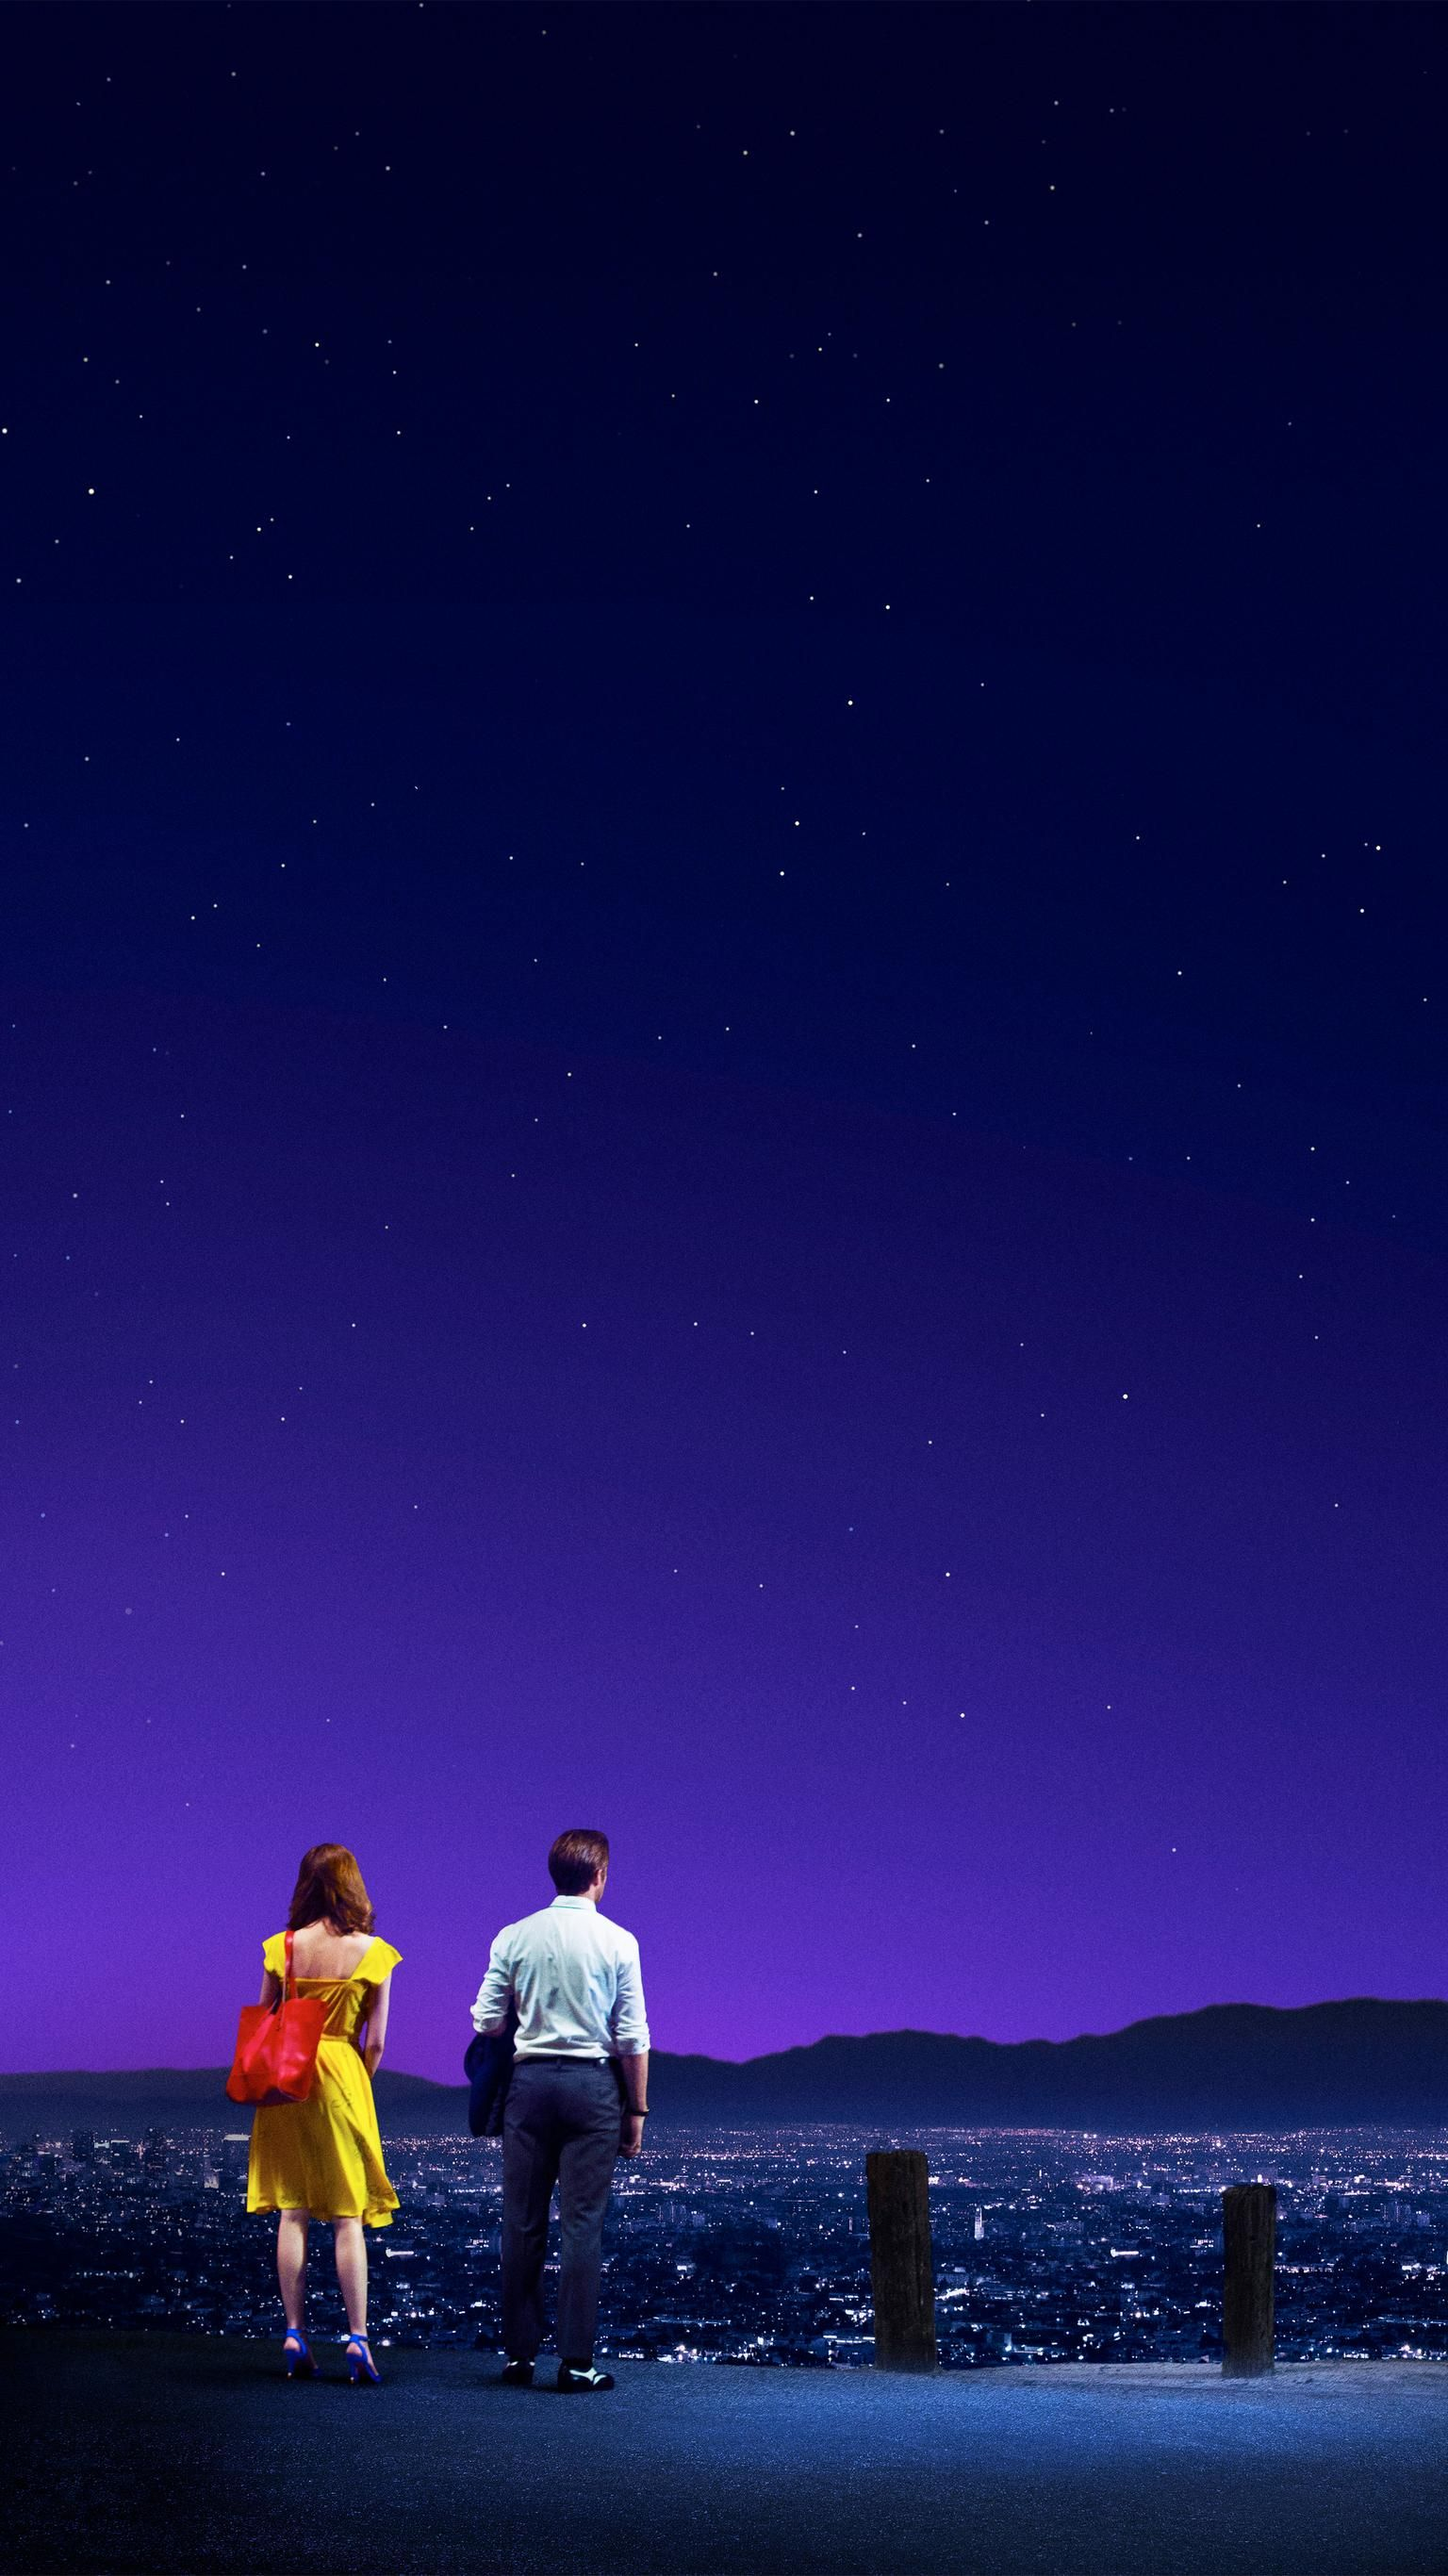 La La Land 2016 Phone Wallpaper In 2020 La La Land Movie